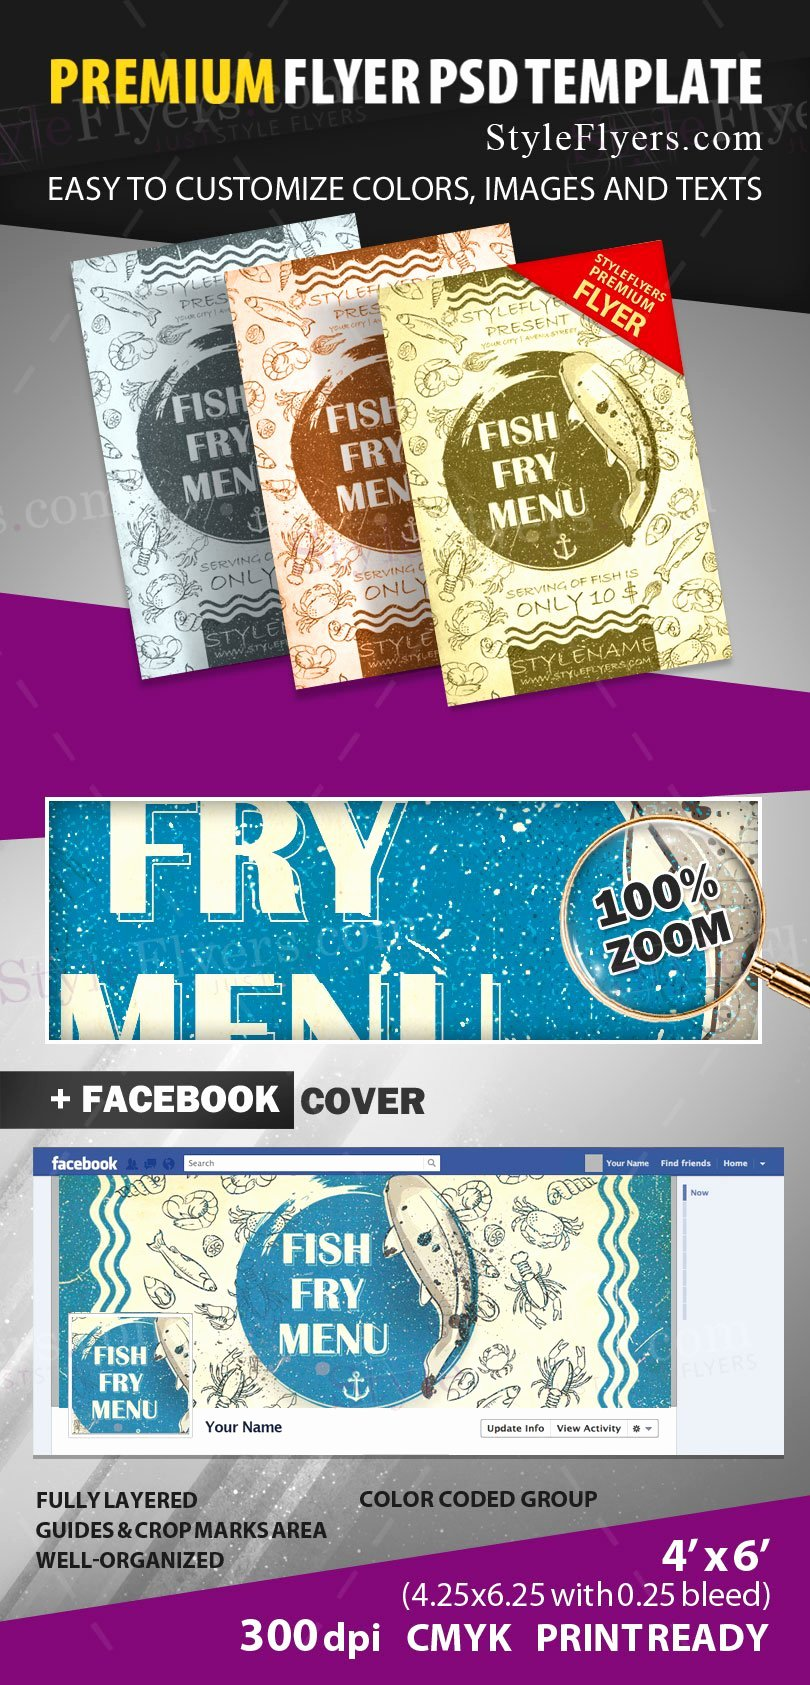 Free Fish Fry Flyer Template Beautiful Fish Fry Menu Psd Flyer Template Styleflyers